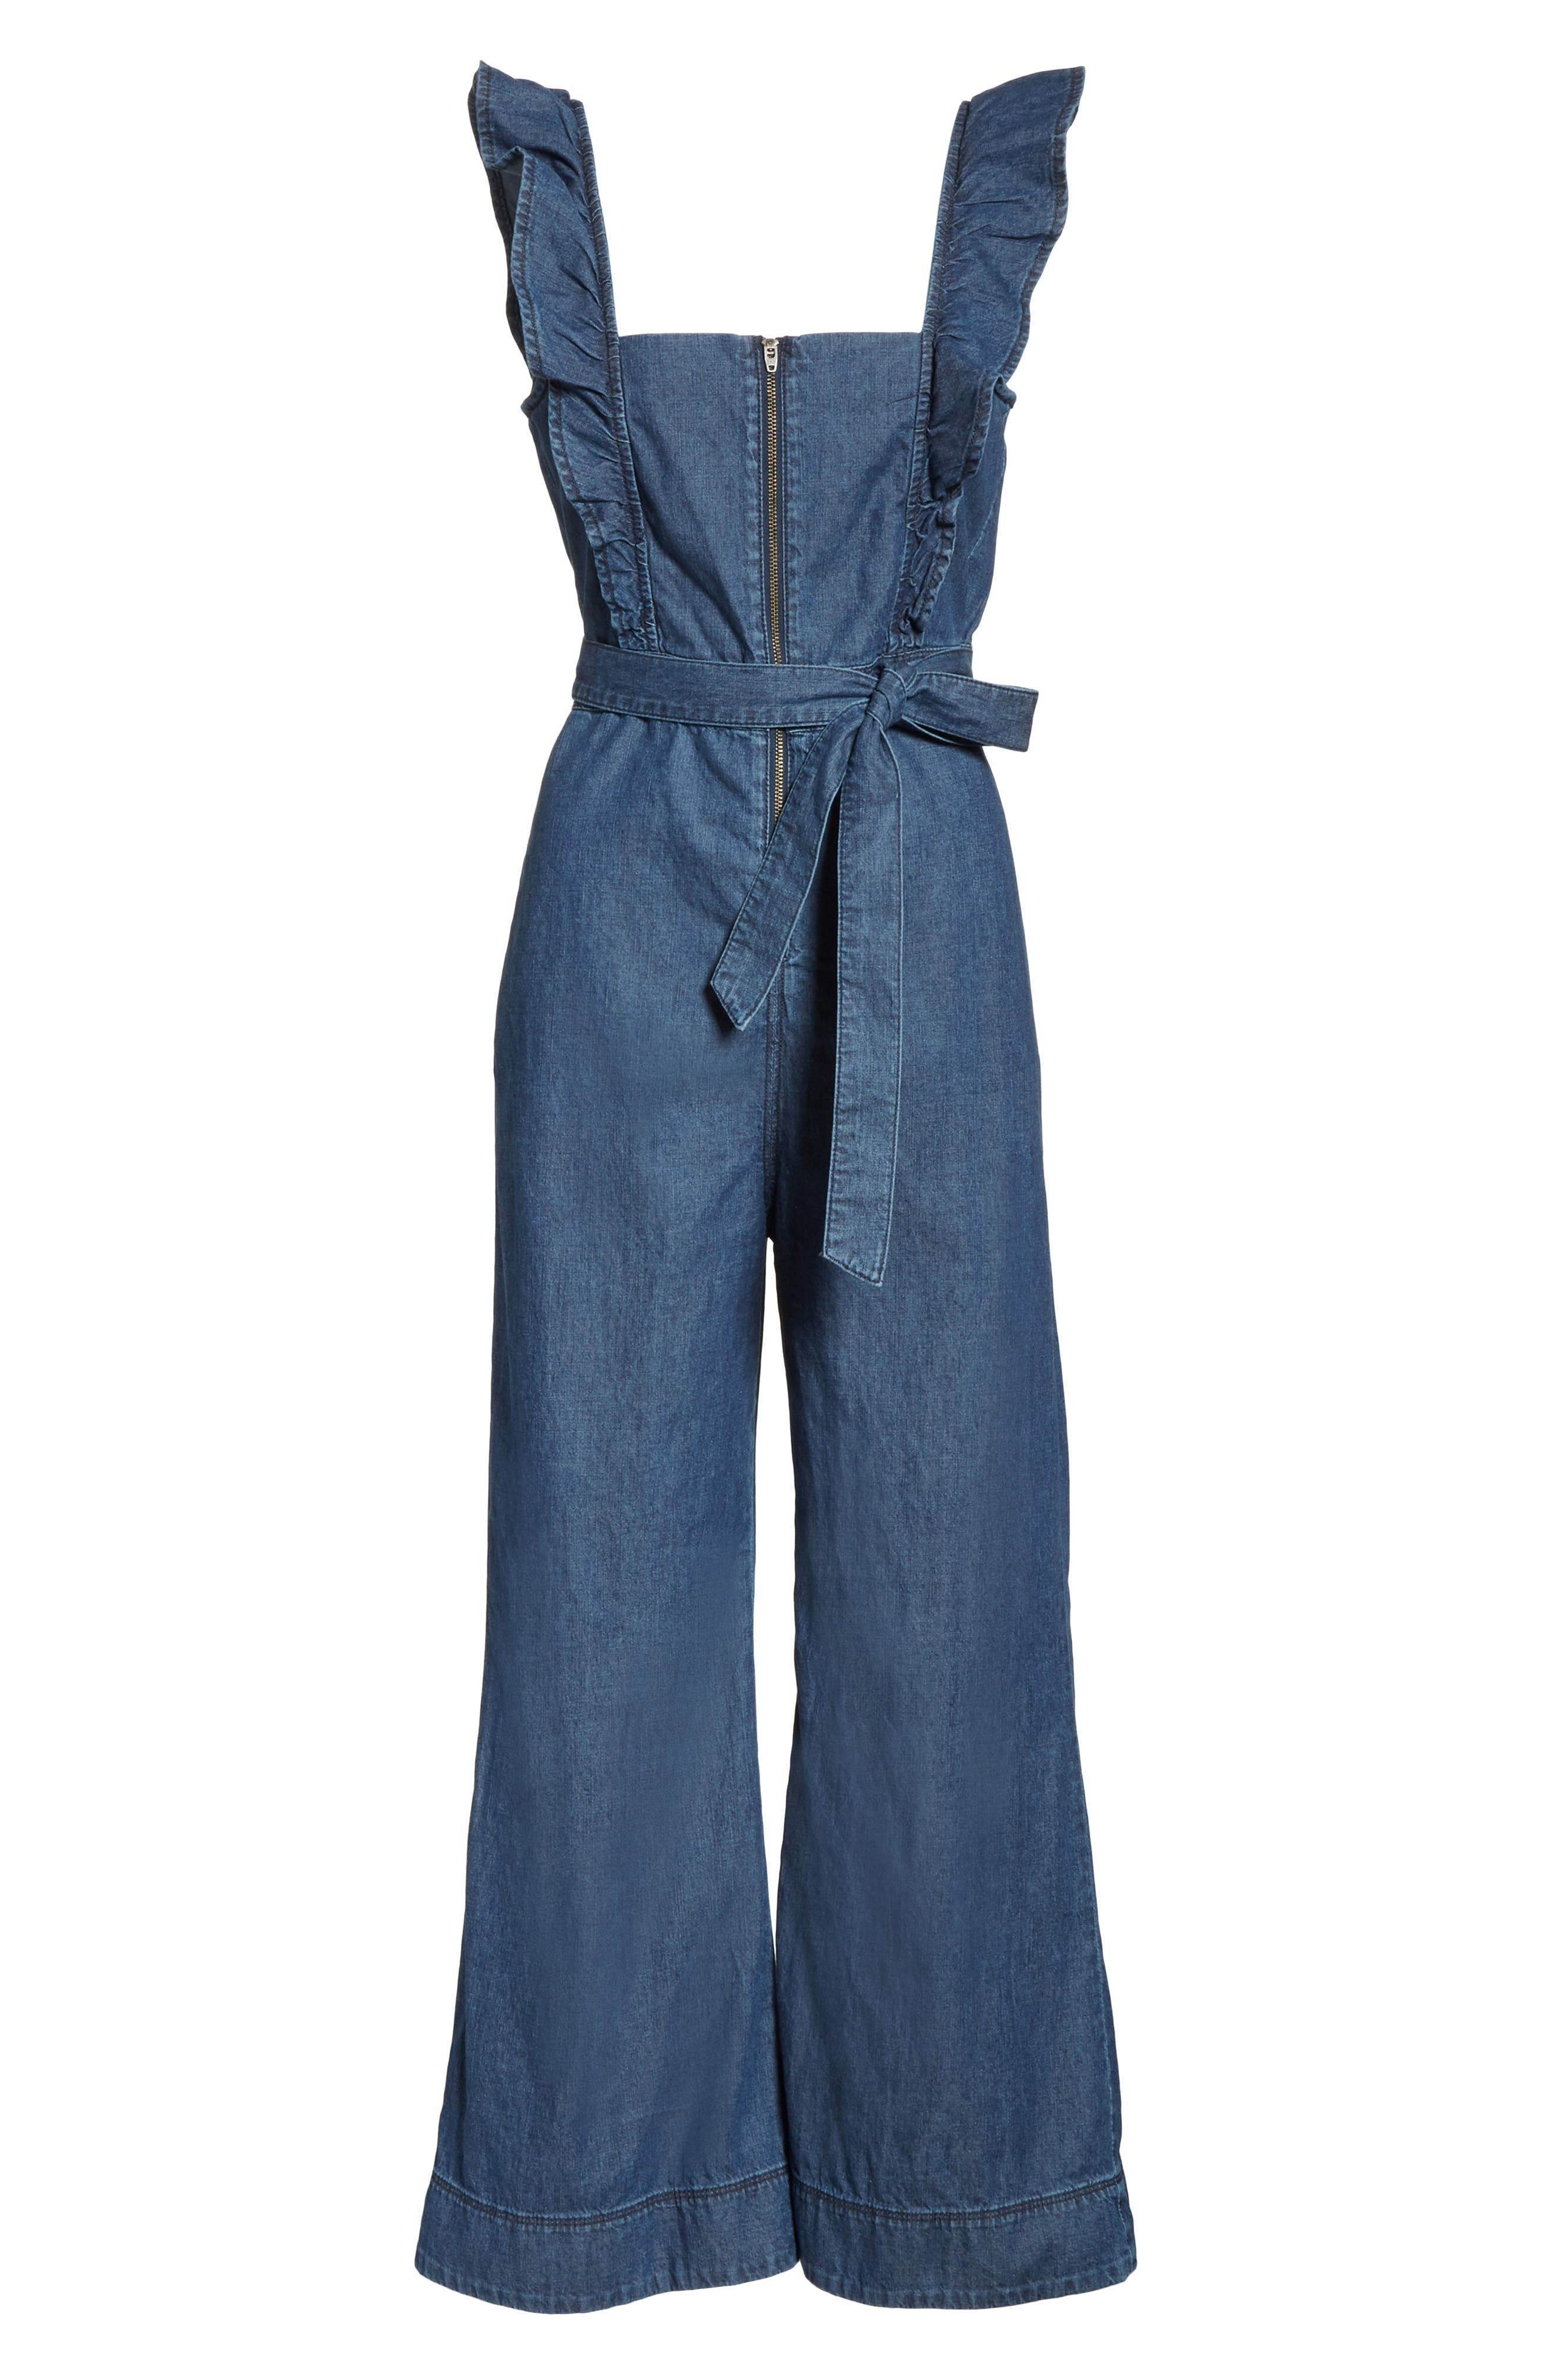 Sun Valley Jumpsuit,                             Alternate thumbnail 6, color,                             Dark Denim